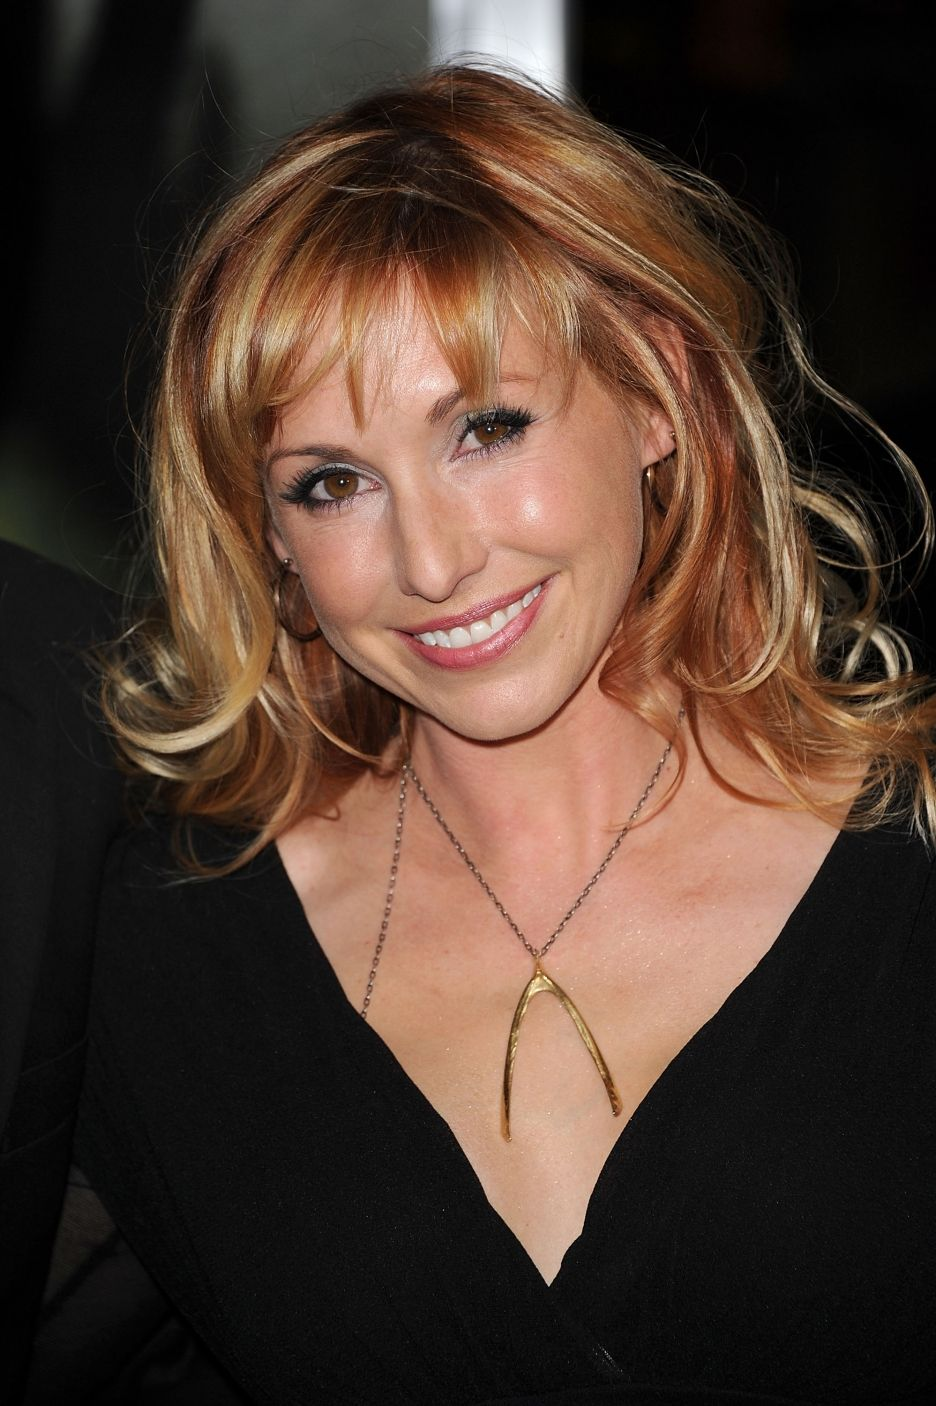 kari byron boobs